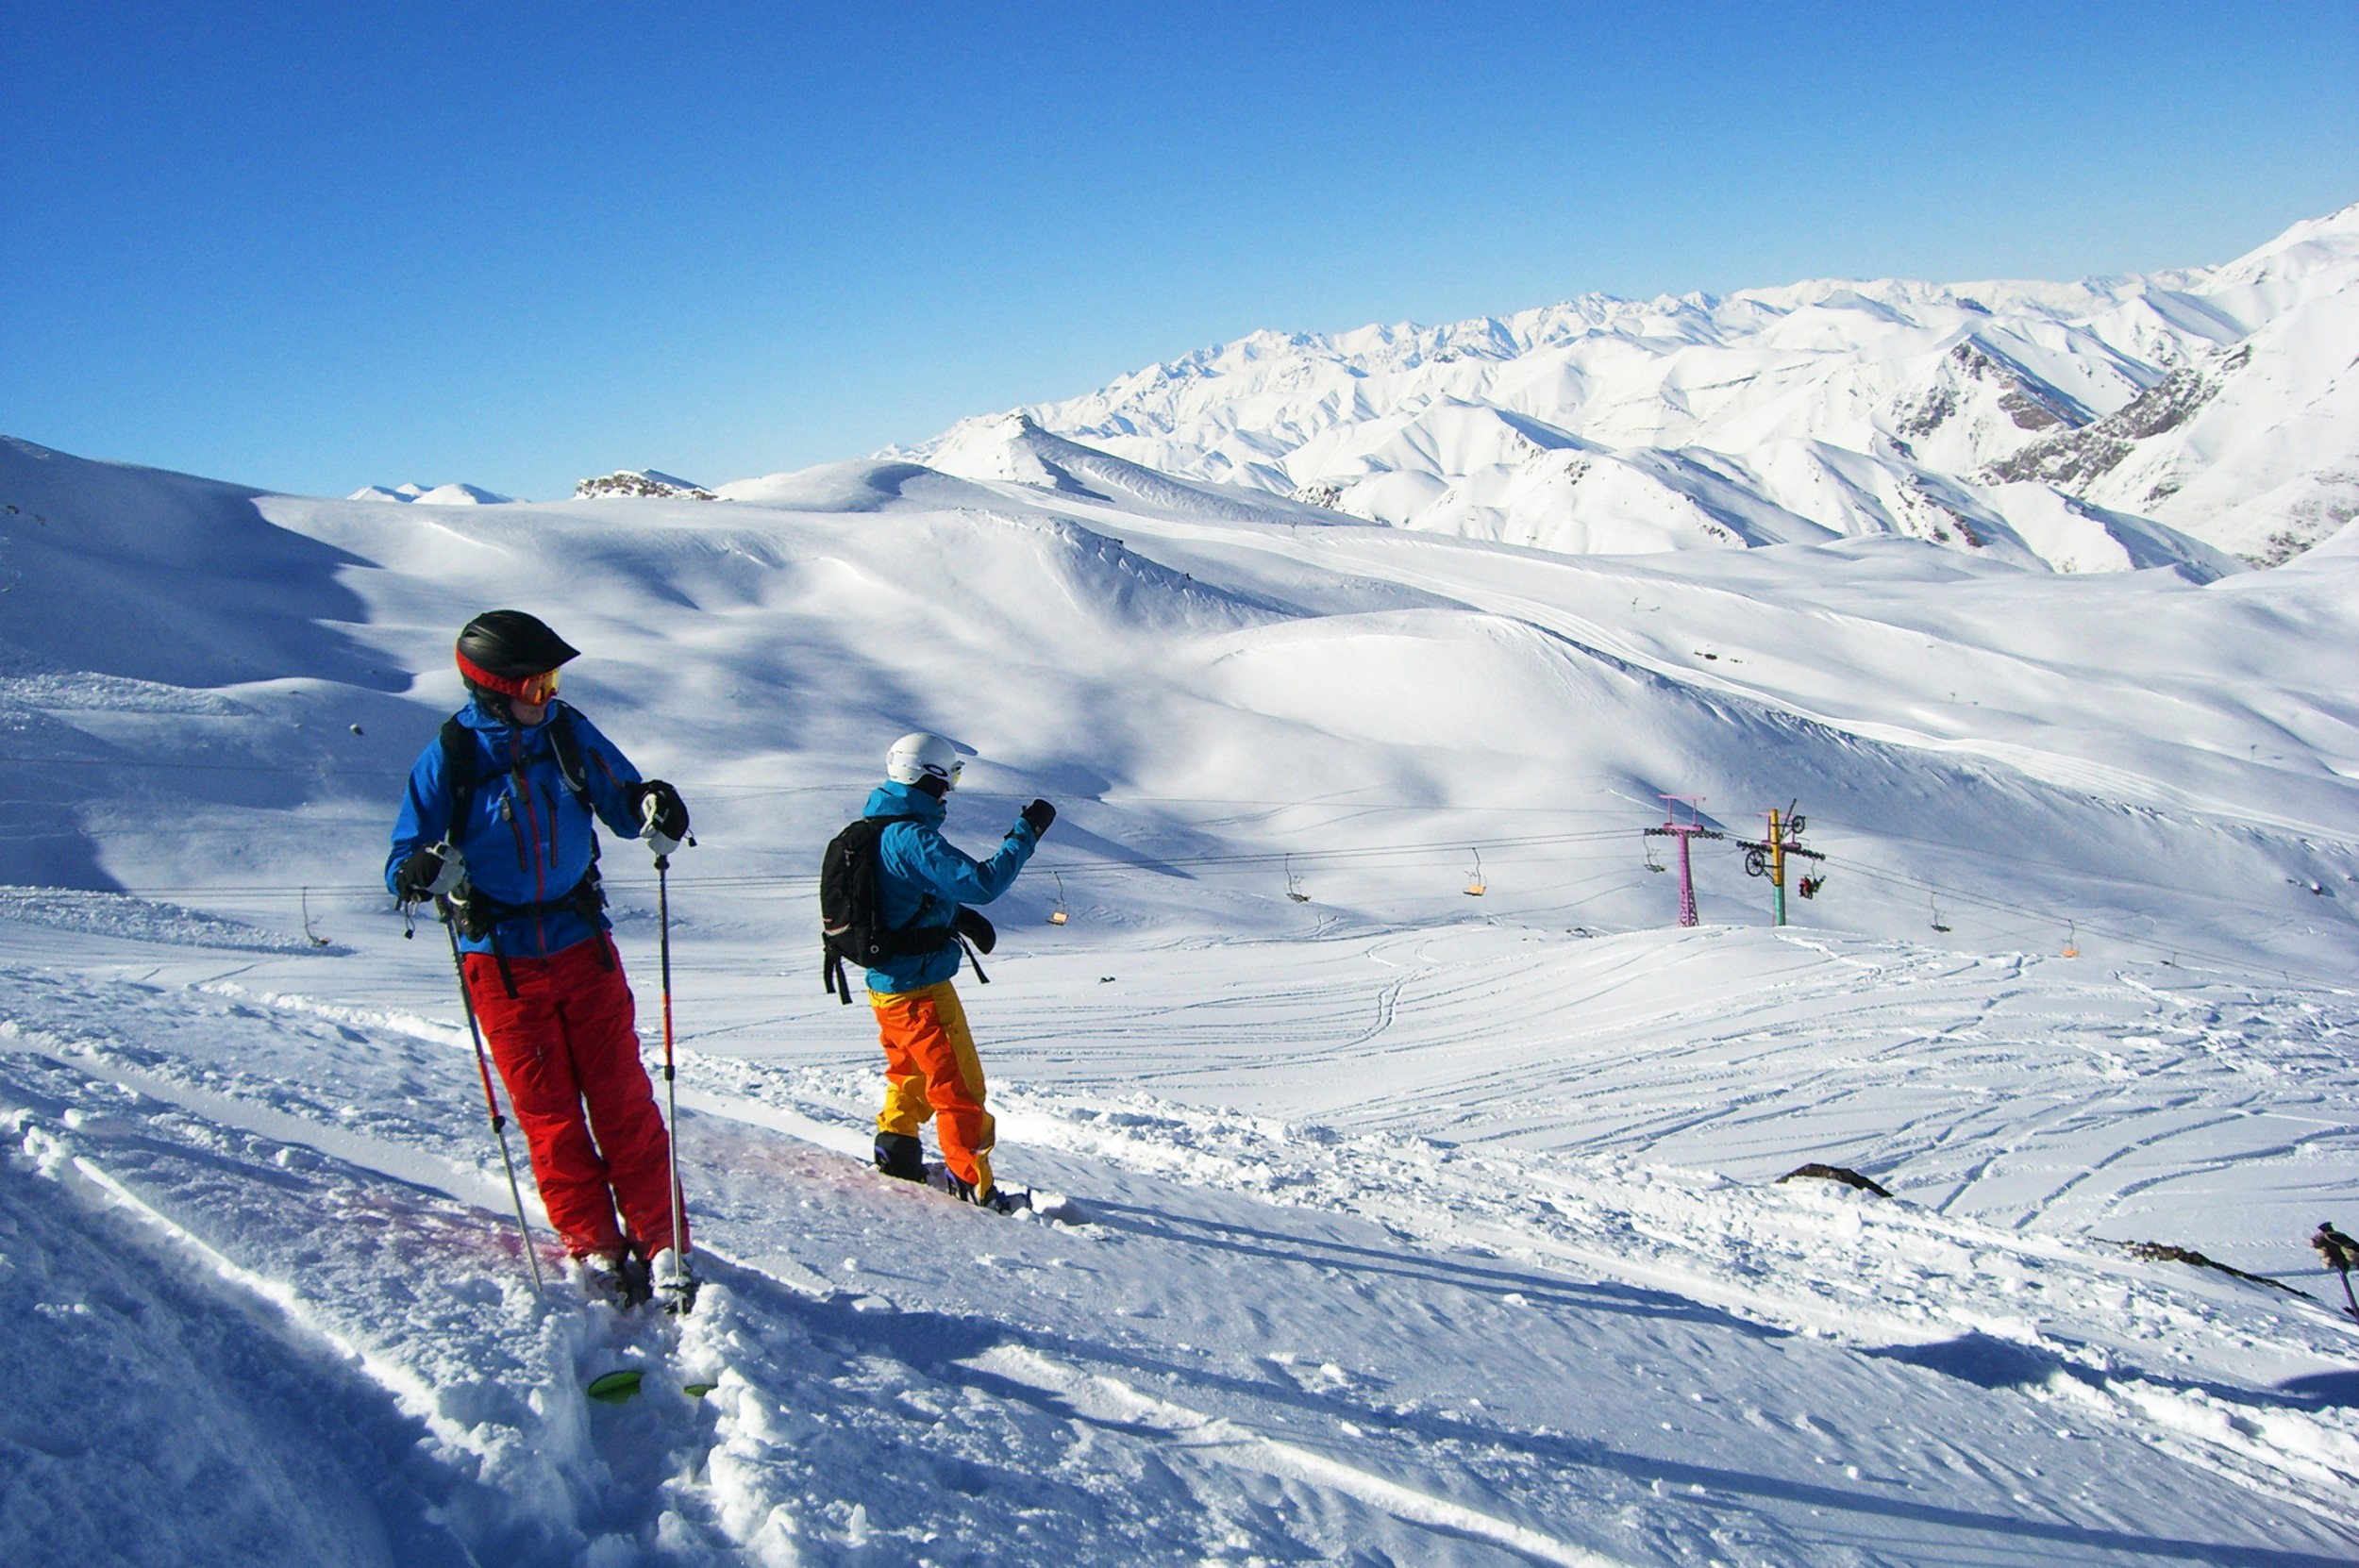 skiing wallpapers images photos pictures backgrounds